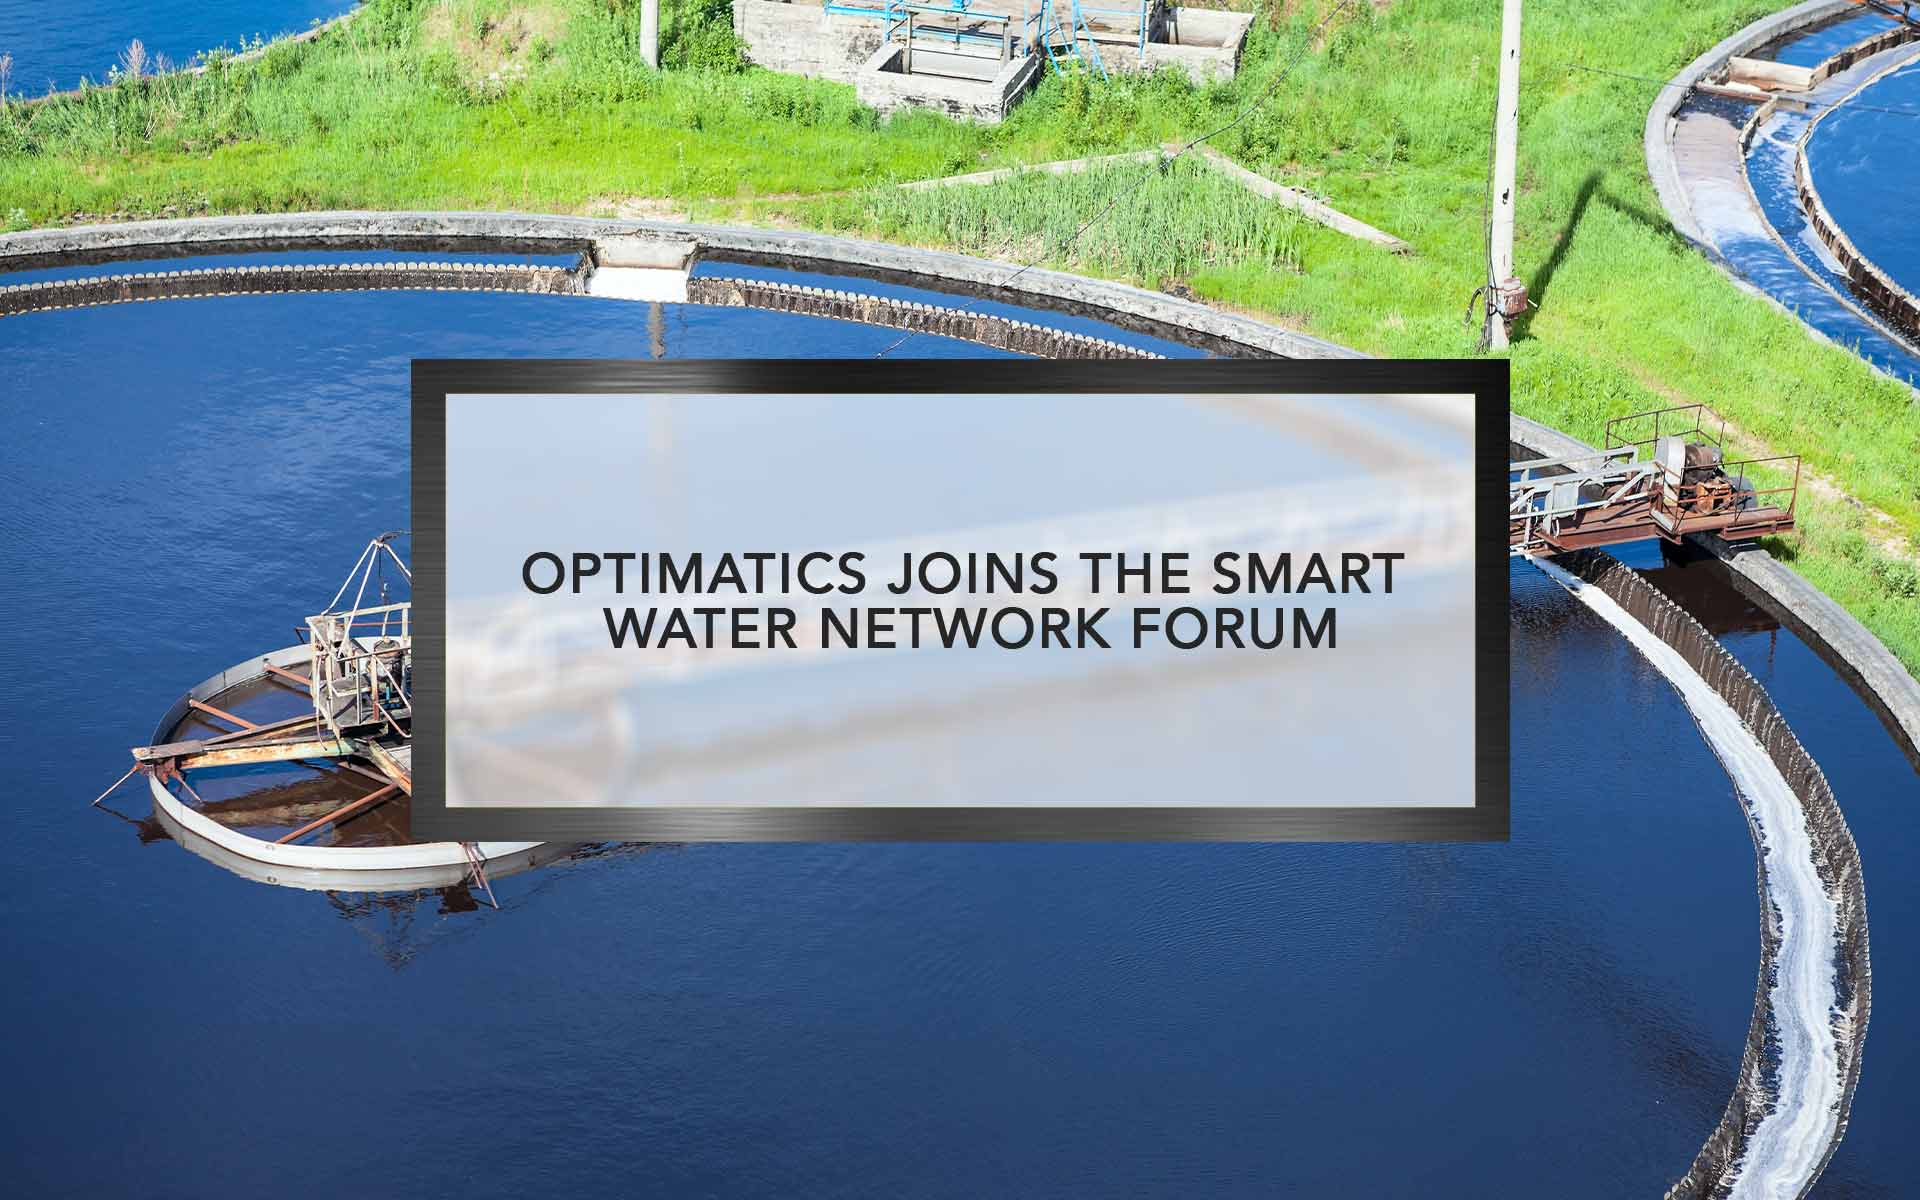 Optimatics joins the Smart Water Network Forum